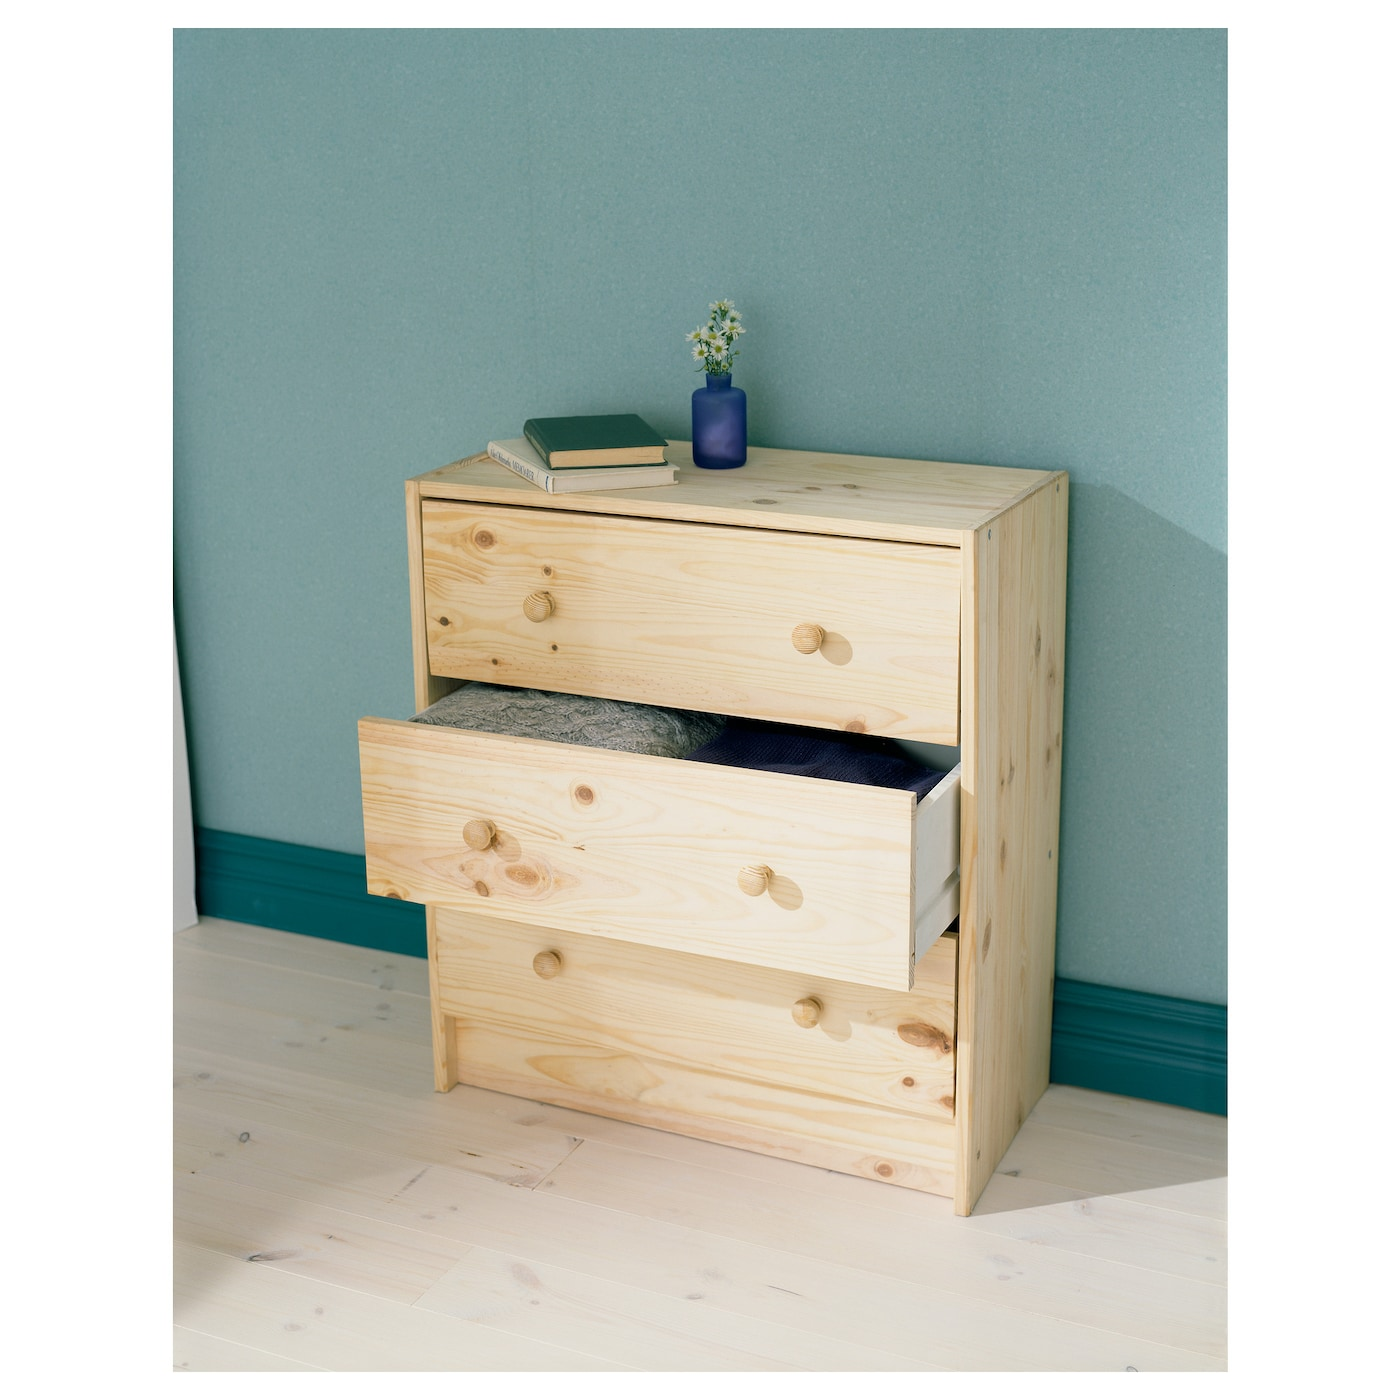 IKEA RAST chest of 3 drawers Made of solid wood, which is a hardwearing and warm natural material.